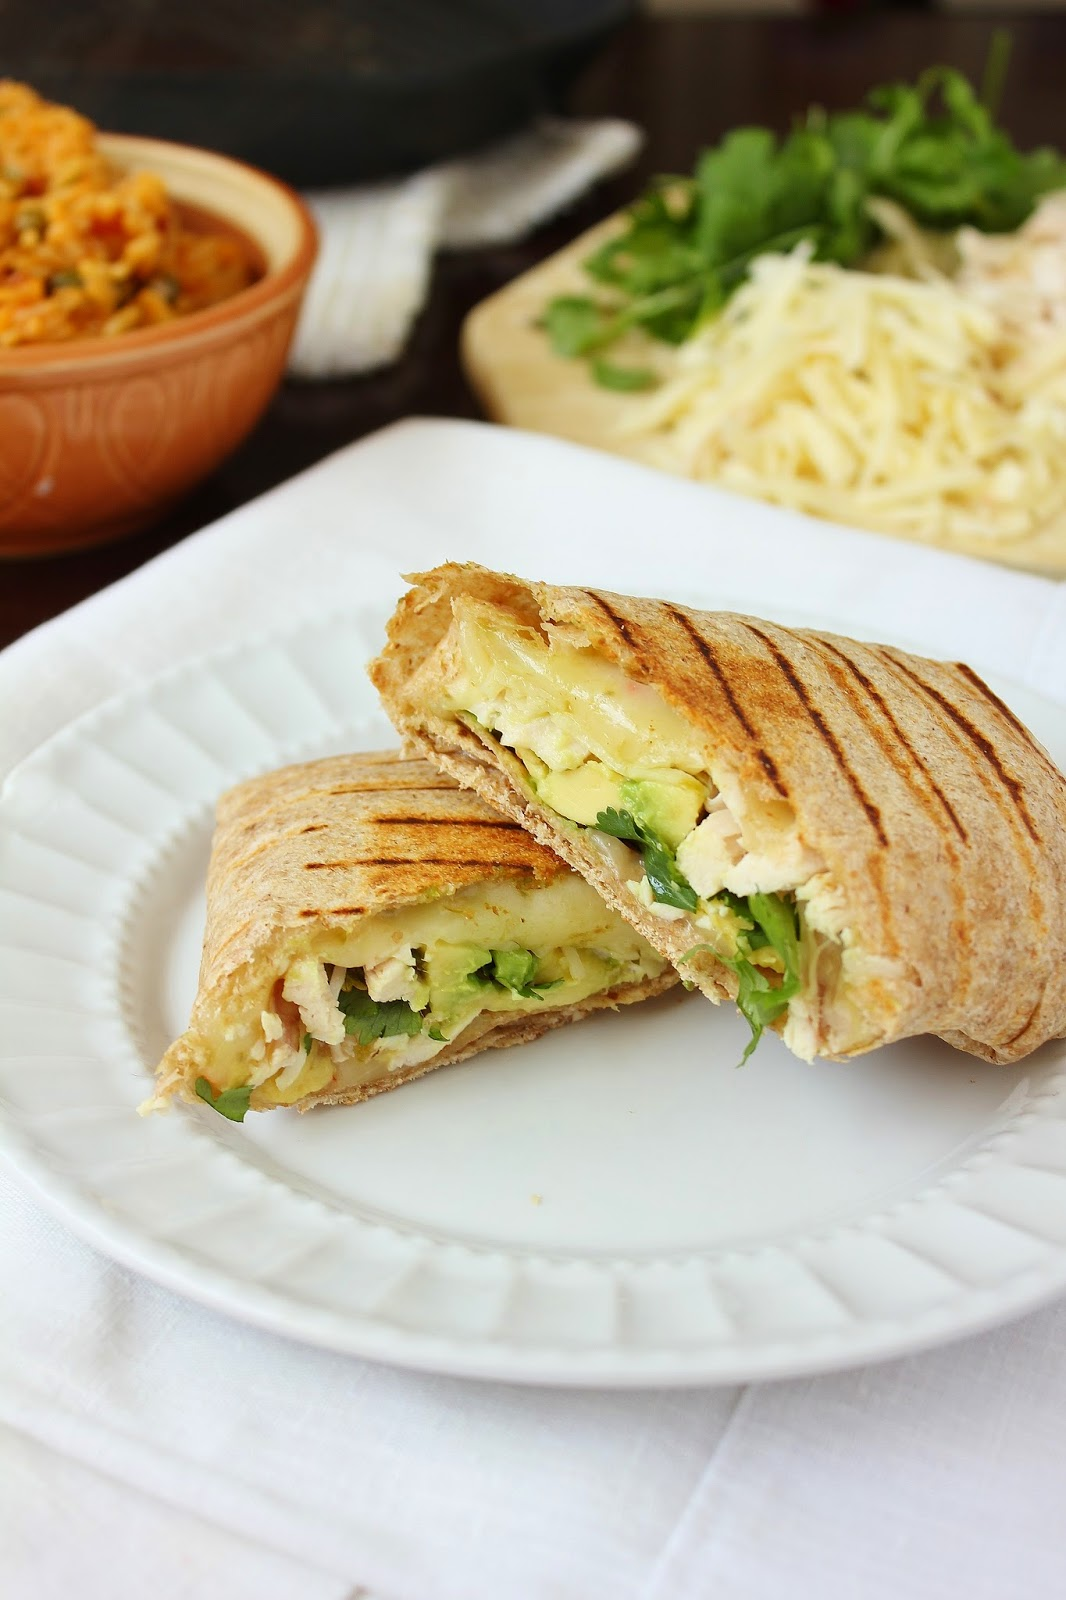 Chicken Avocado Grilled Wrap